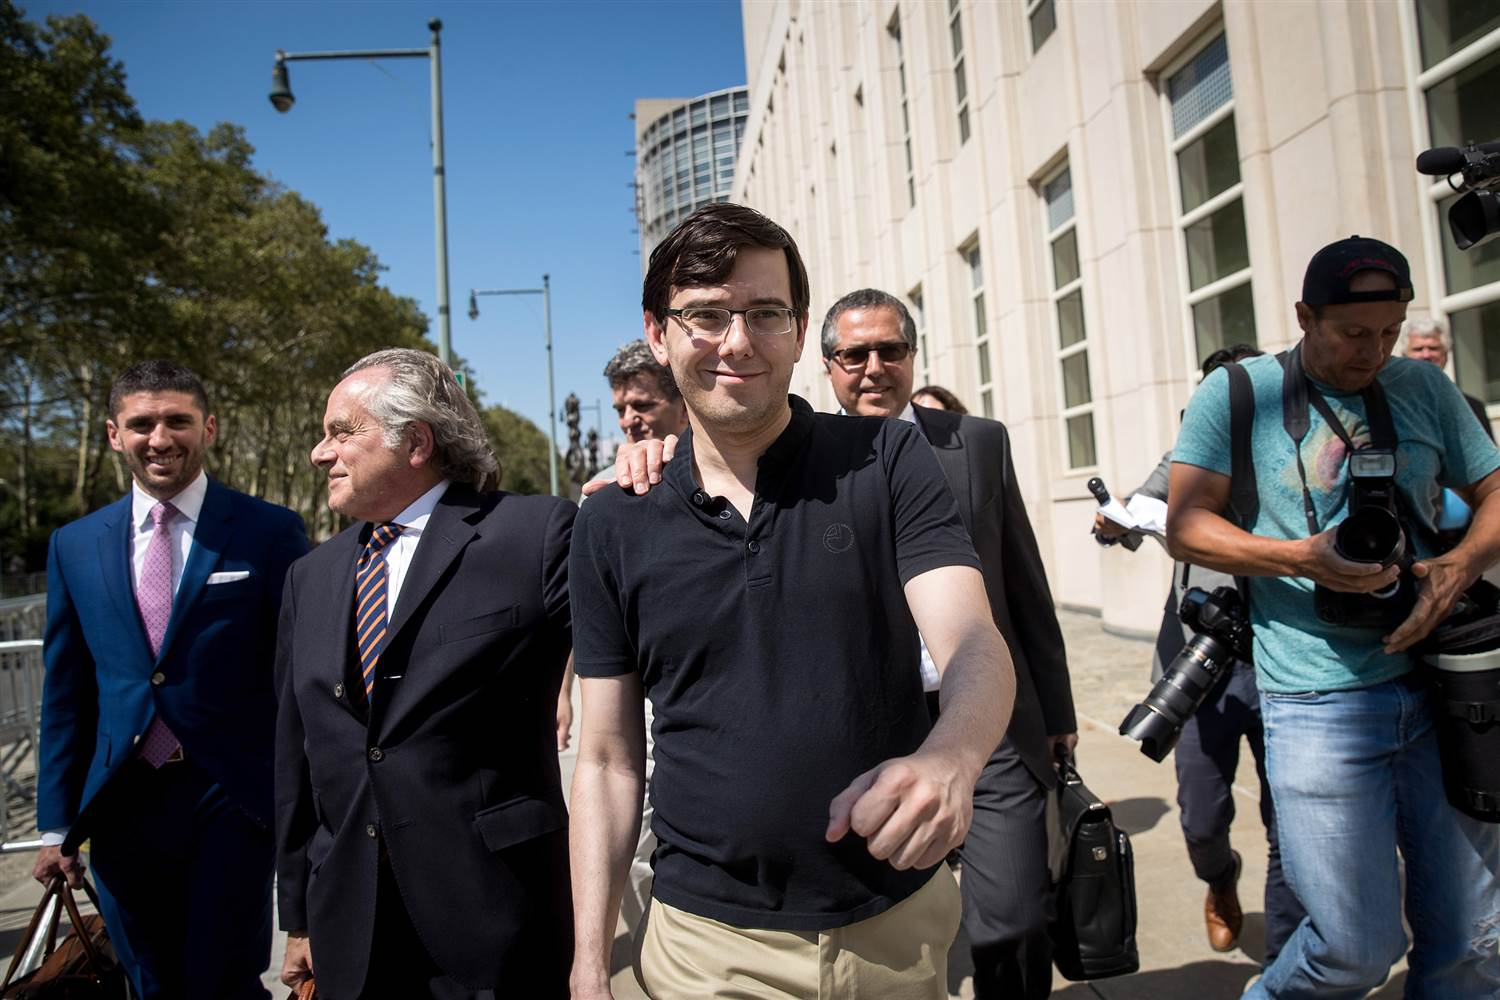 JUST IN: Martin Shkreli sentenced to 7 years in prison for securities fraud. https://t.co/RVyjBzS6AR